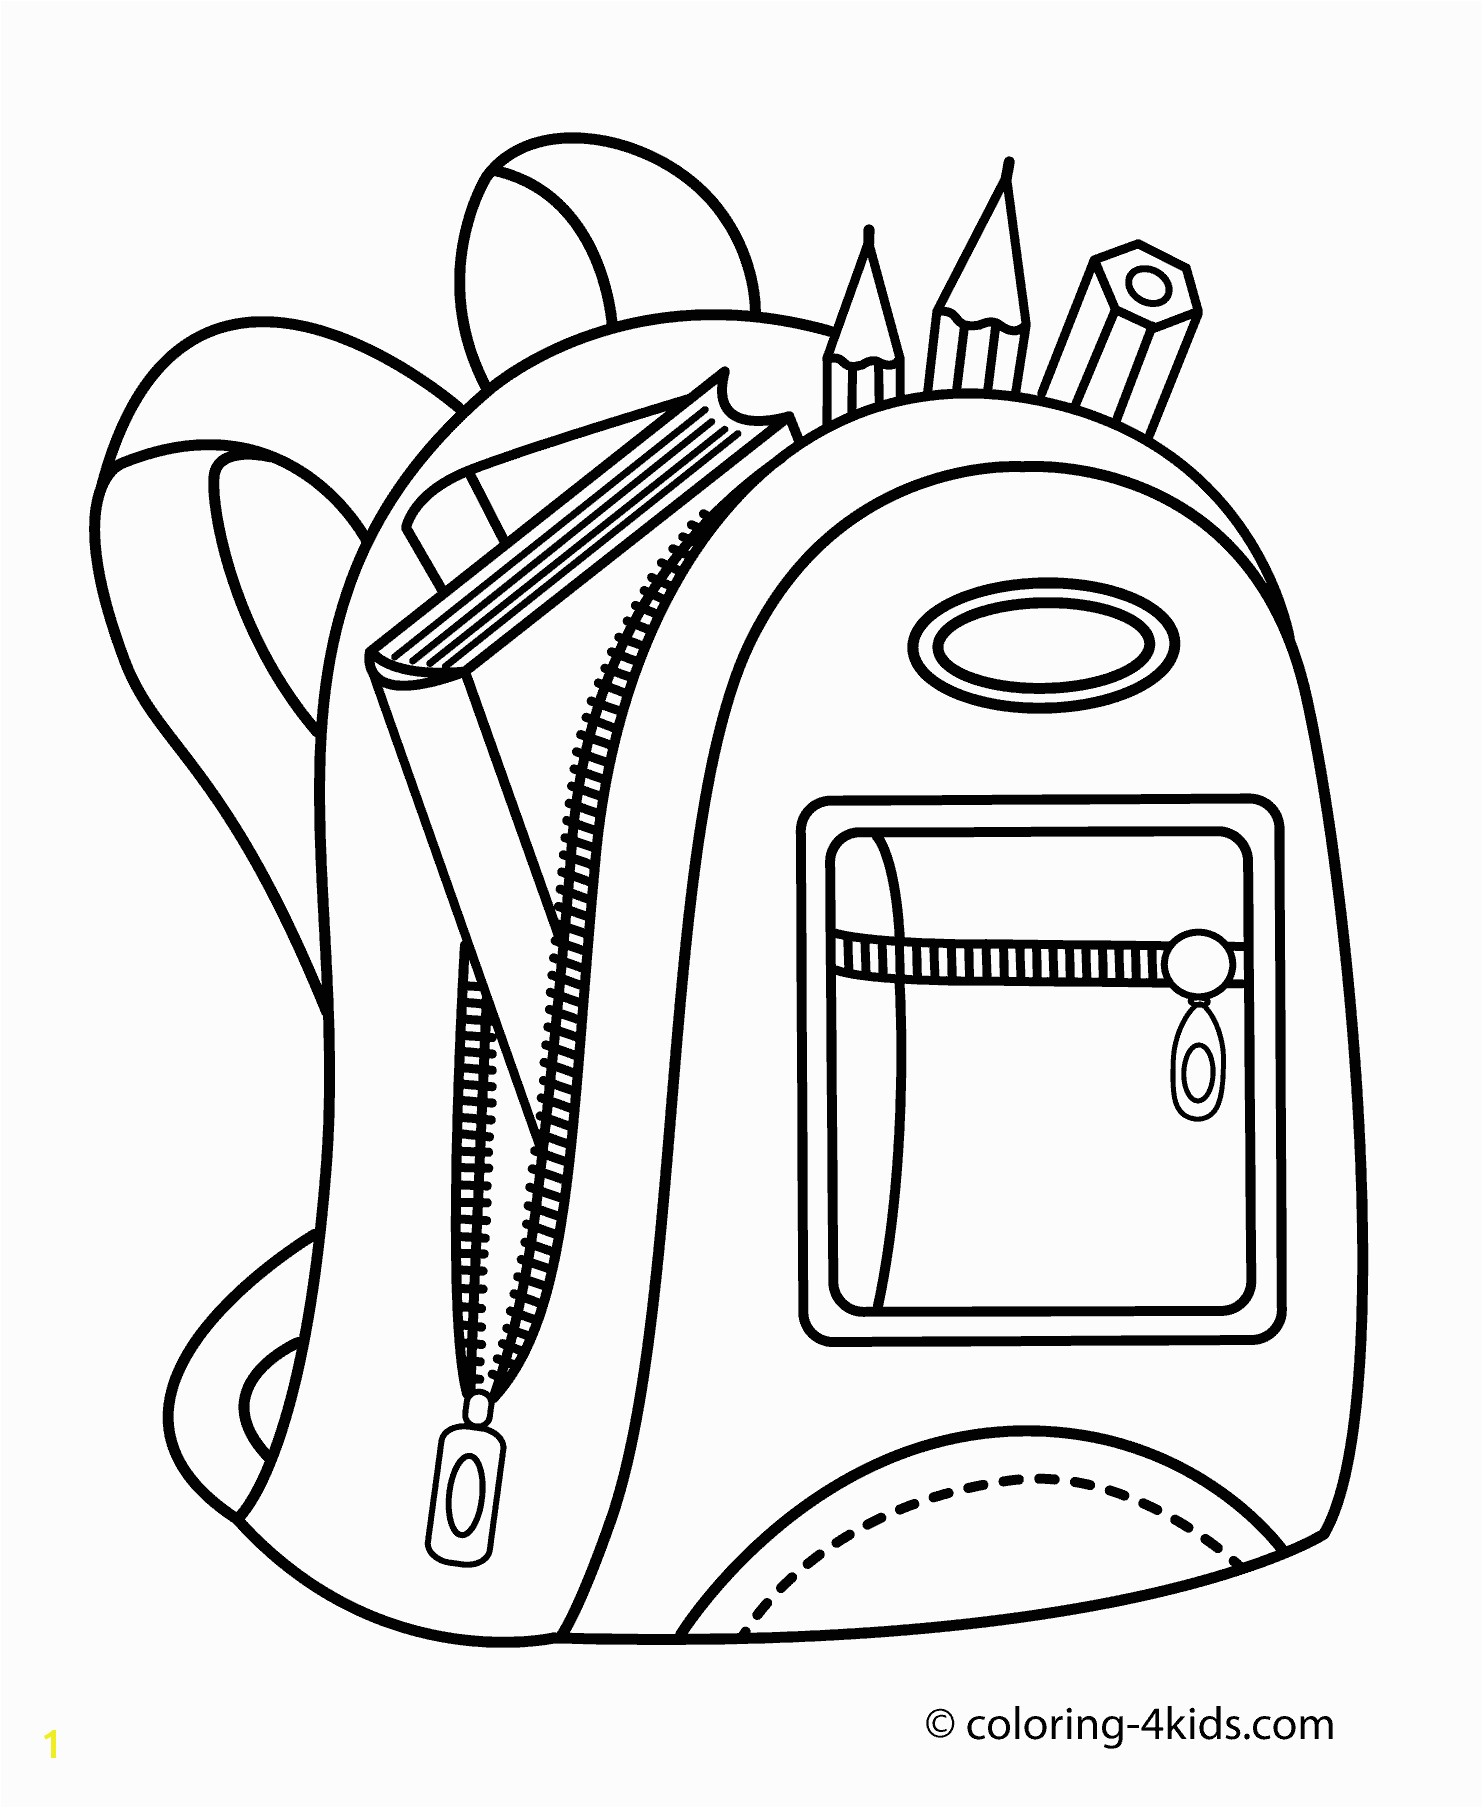 Golf Bag Coloring Page School Bag Drawing at Getdrawings